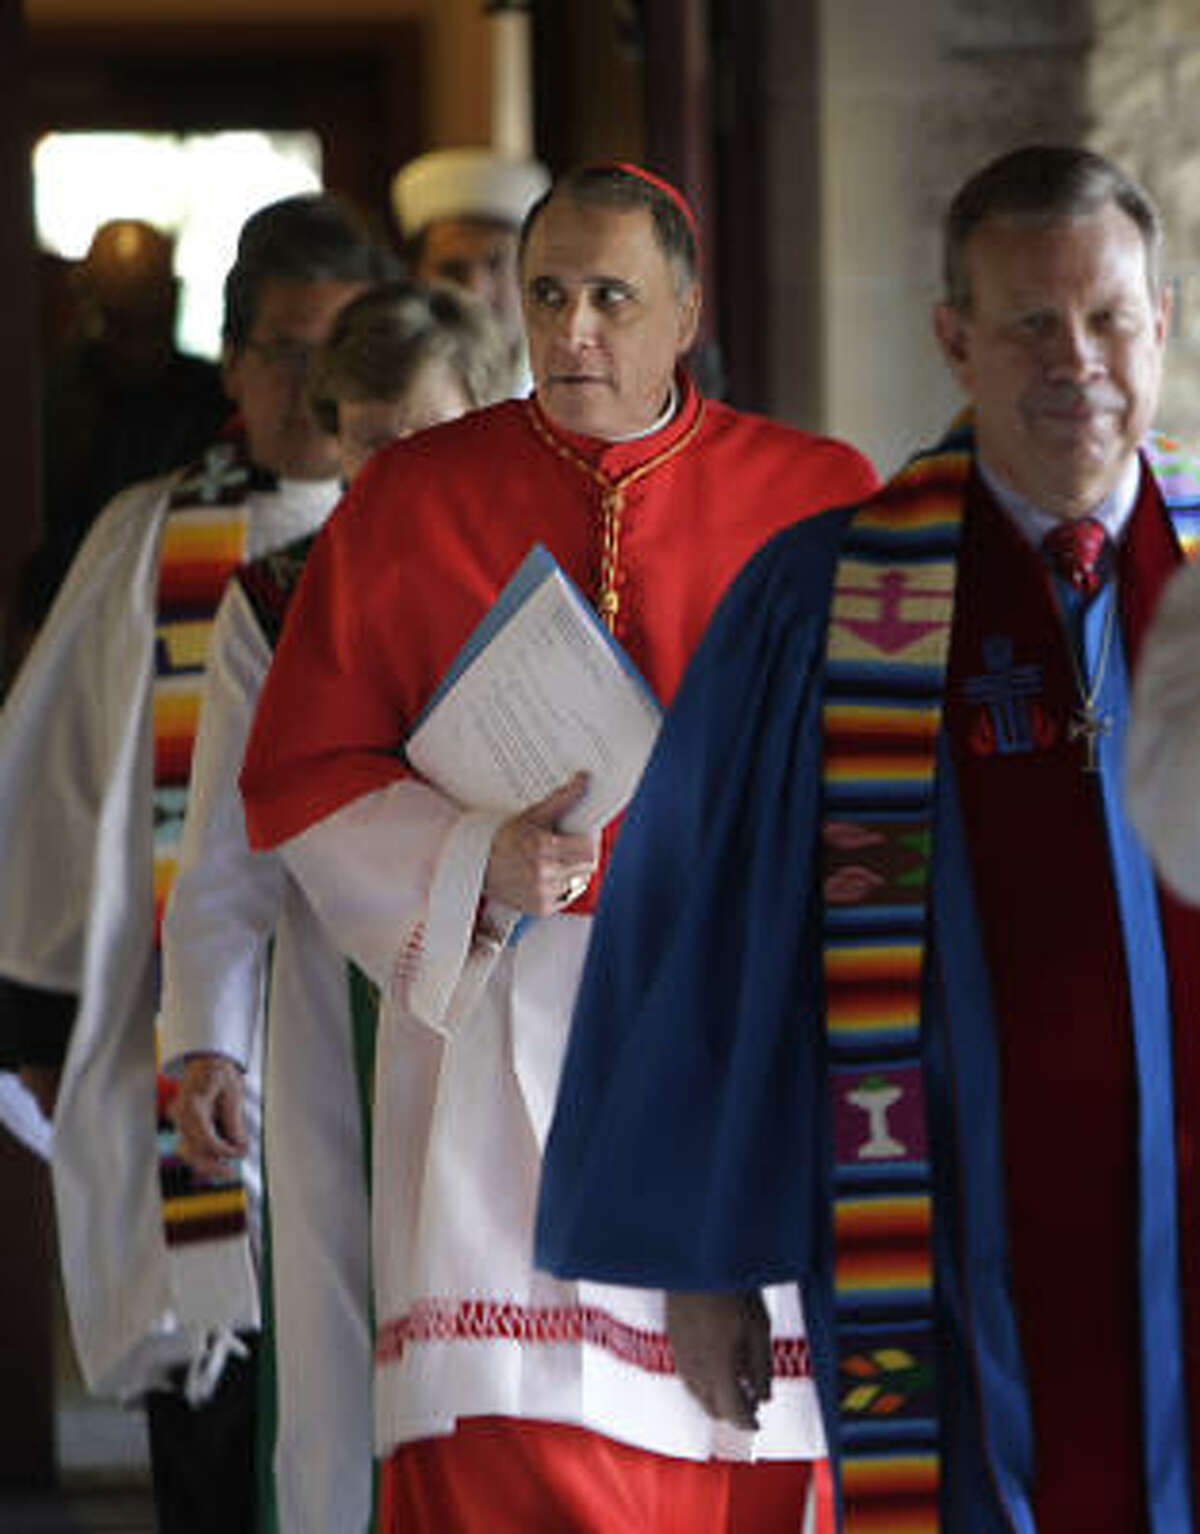 Cardinal Daniel DiNardo, carrying papers, was among the local religious leaders attending an interfaith prayer service to renew a call for immigration reform.